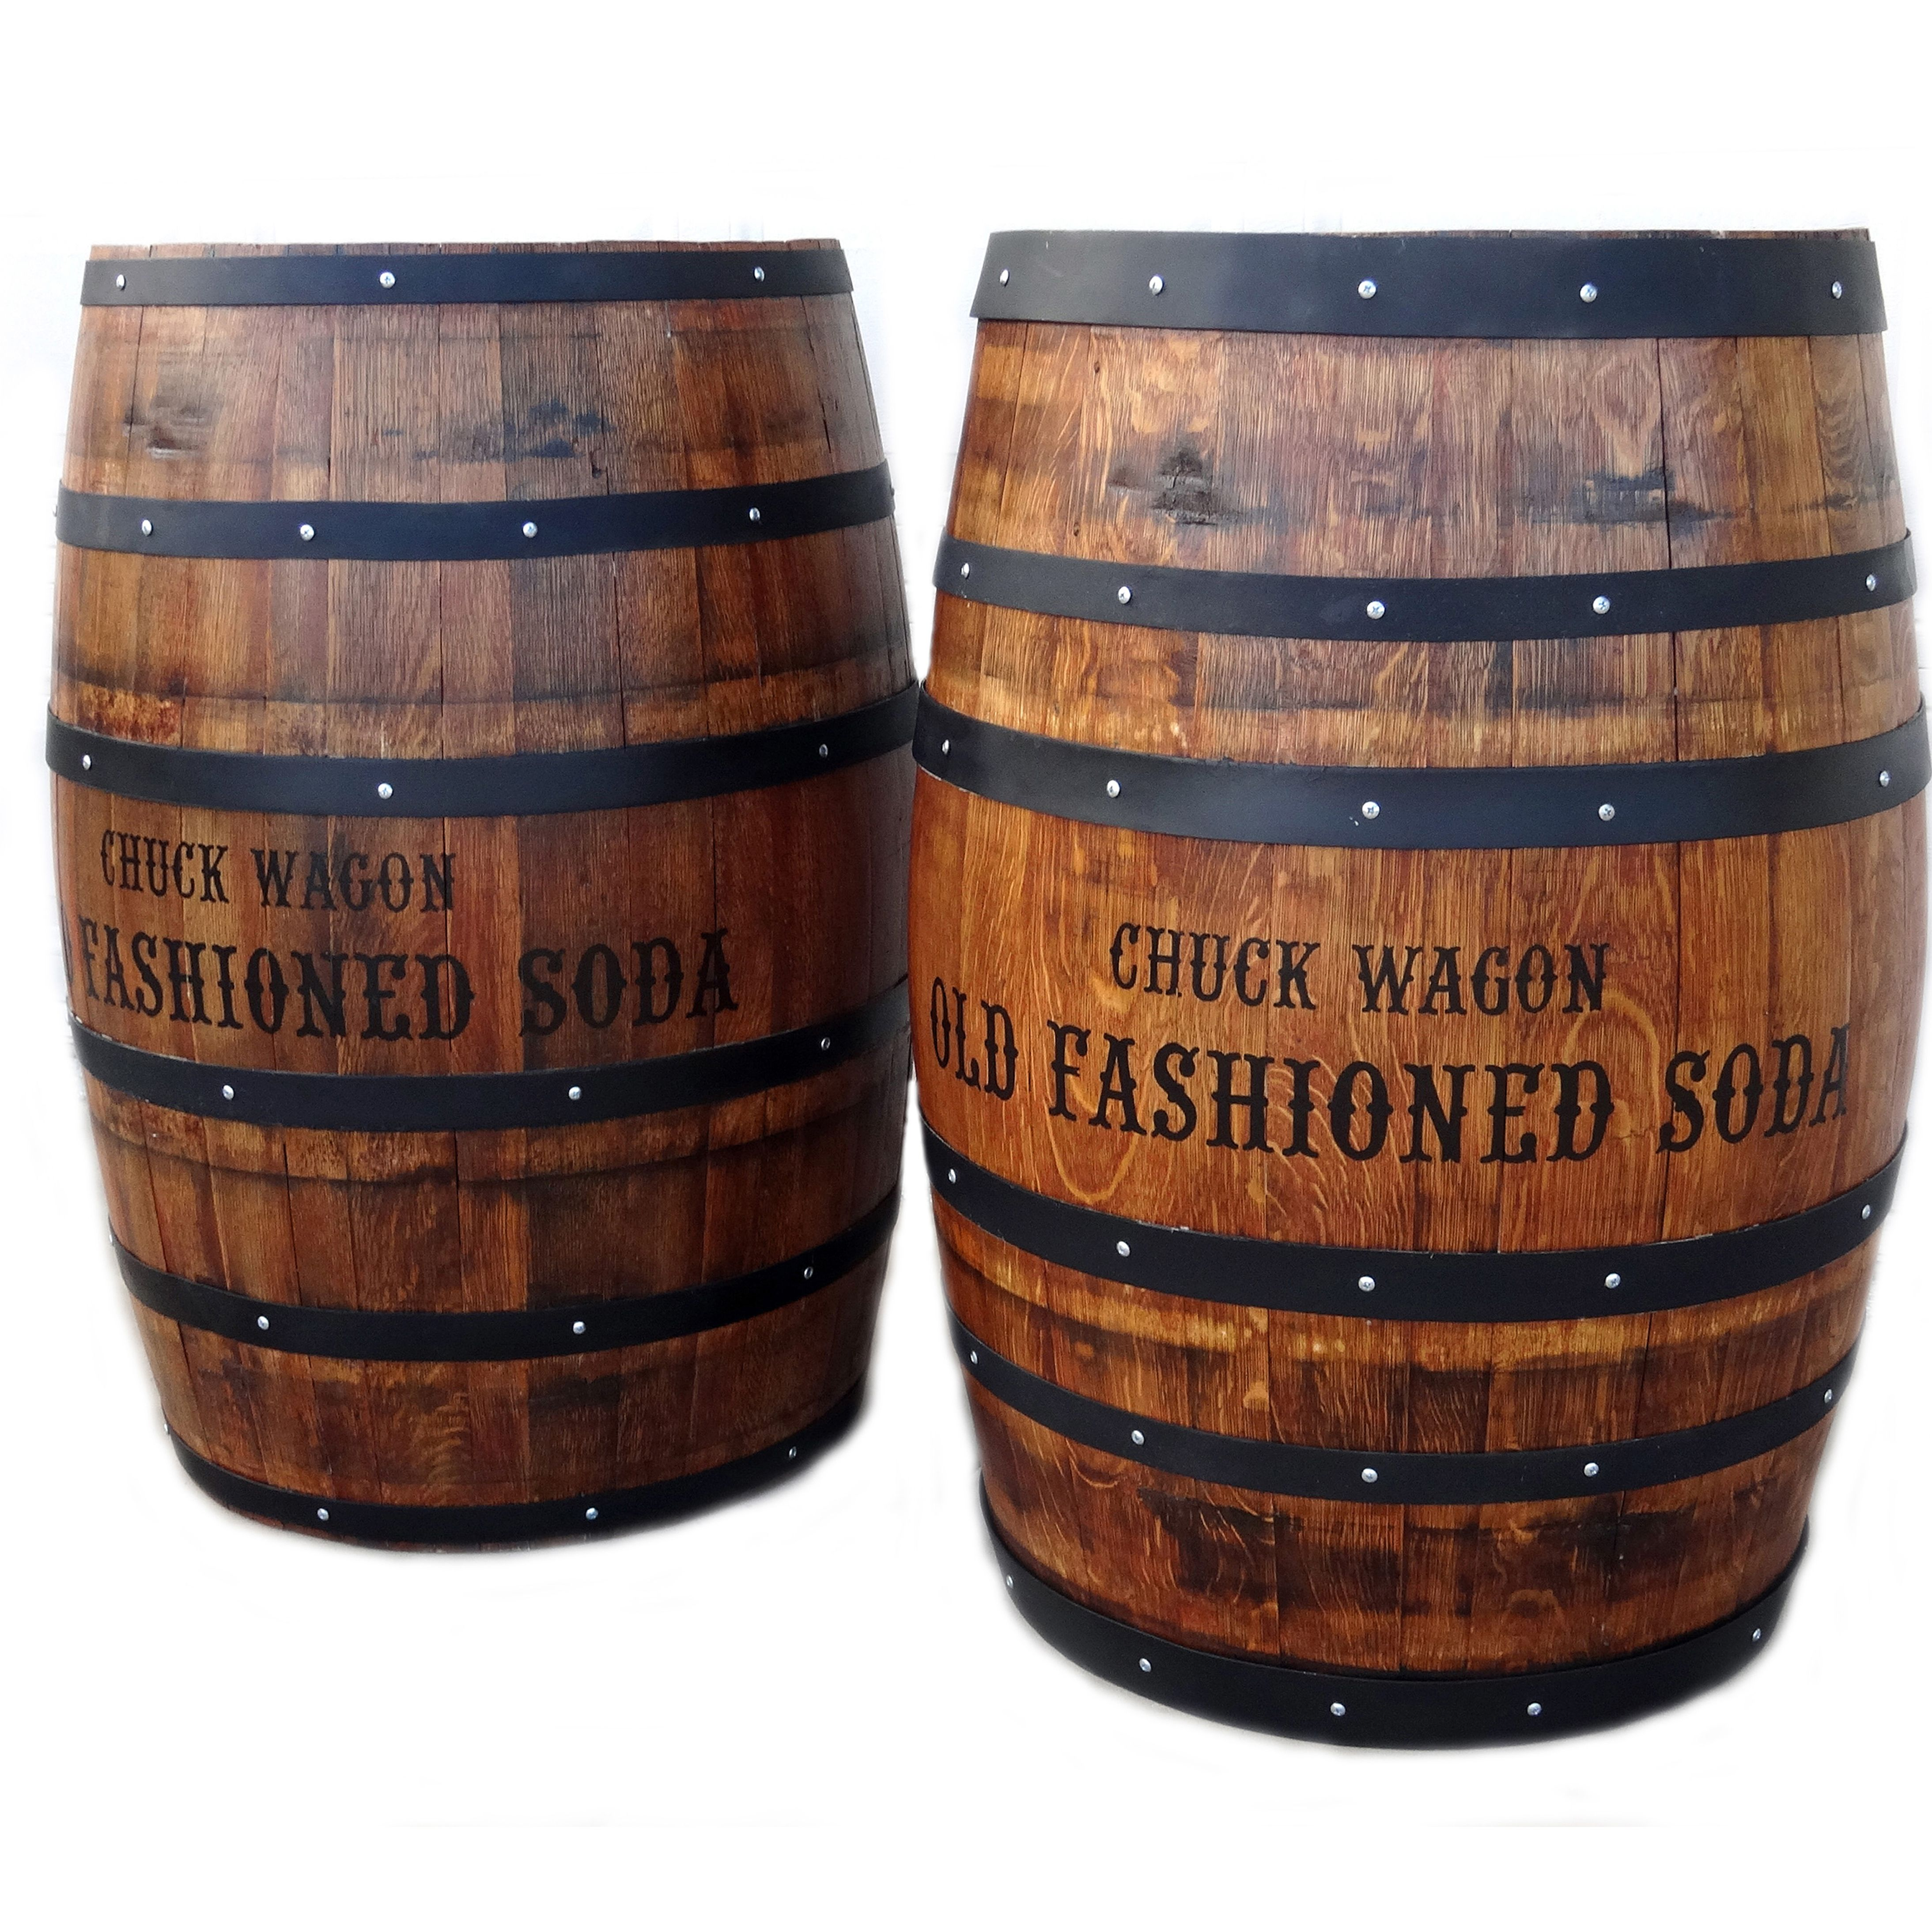 Refurbished Old Wine Barrels With Hand Painted Company Logo